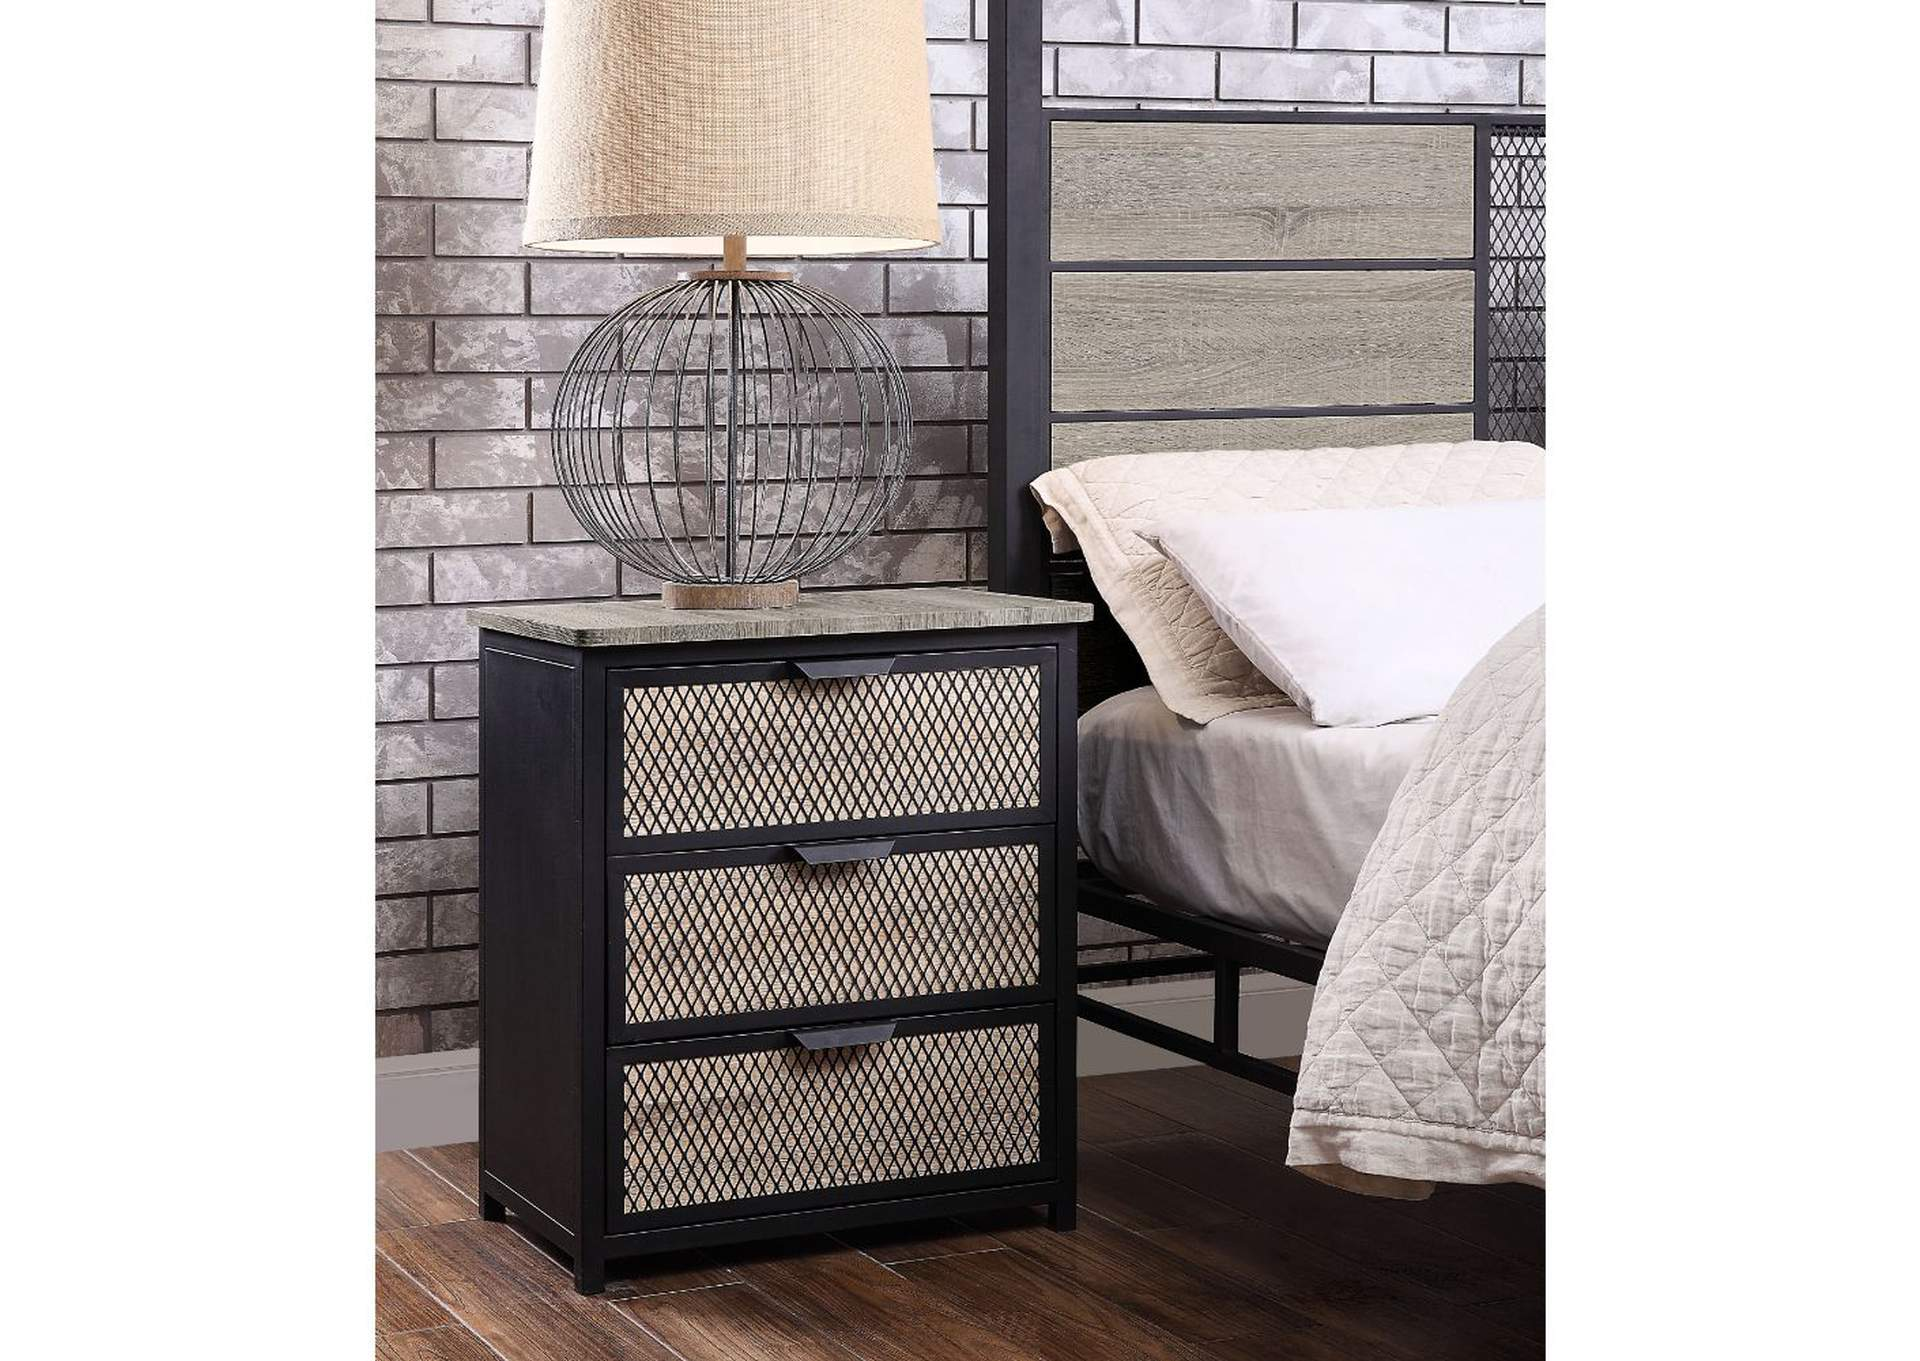 Baara Natural & Sandy Gray Nightstand,Acme